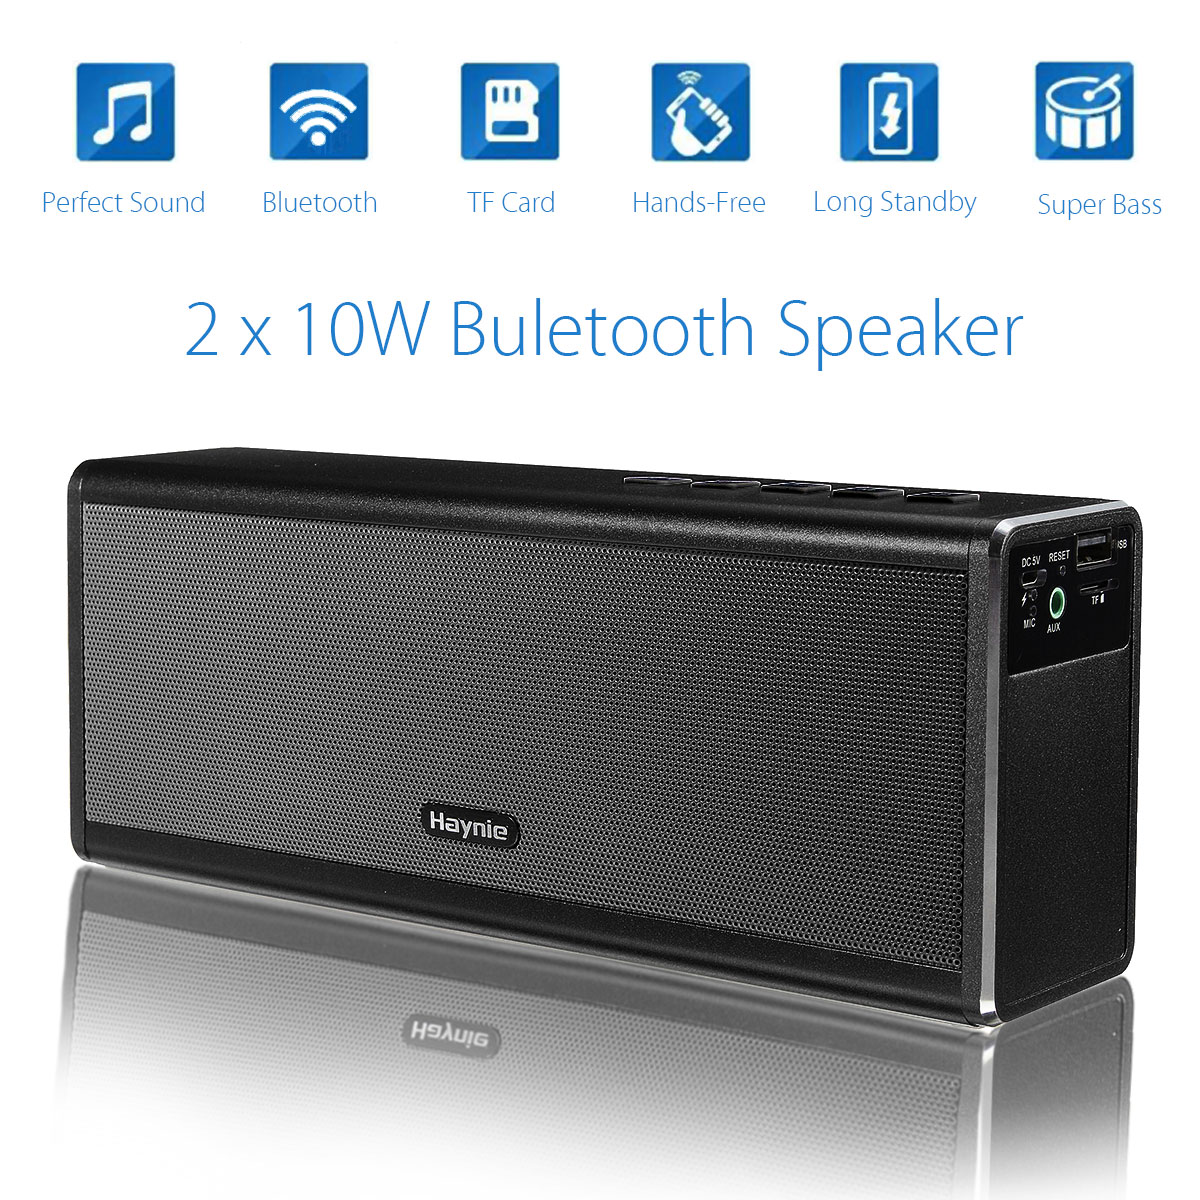 KINCO 20W 4000mah Portable HIFI Wireless Bluetooth 4.0 Speaker Stereo Super Bass Caixa Sound Box HandFree for Phone Power Bank kr8800 portable bluetooth v3 0 led speaker wireless nfc fm hifi stereo loudspeakers super bass caixa se som sound box for phone